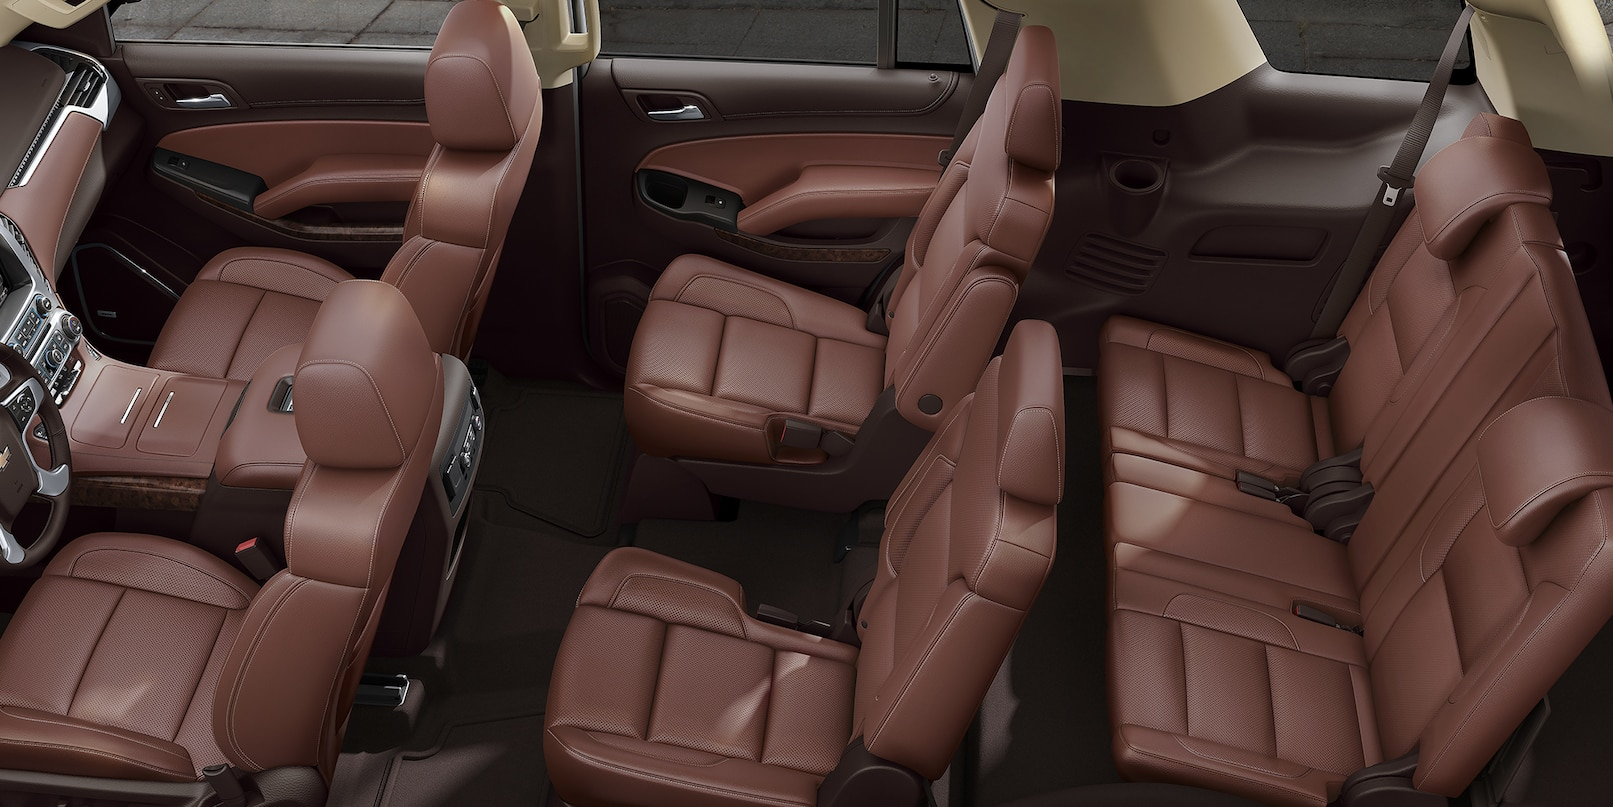 Generous Accommodations in the Chevrolet Tahoe